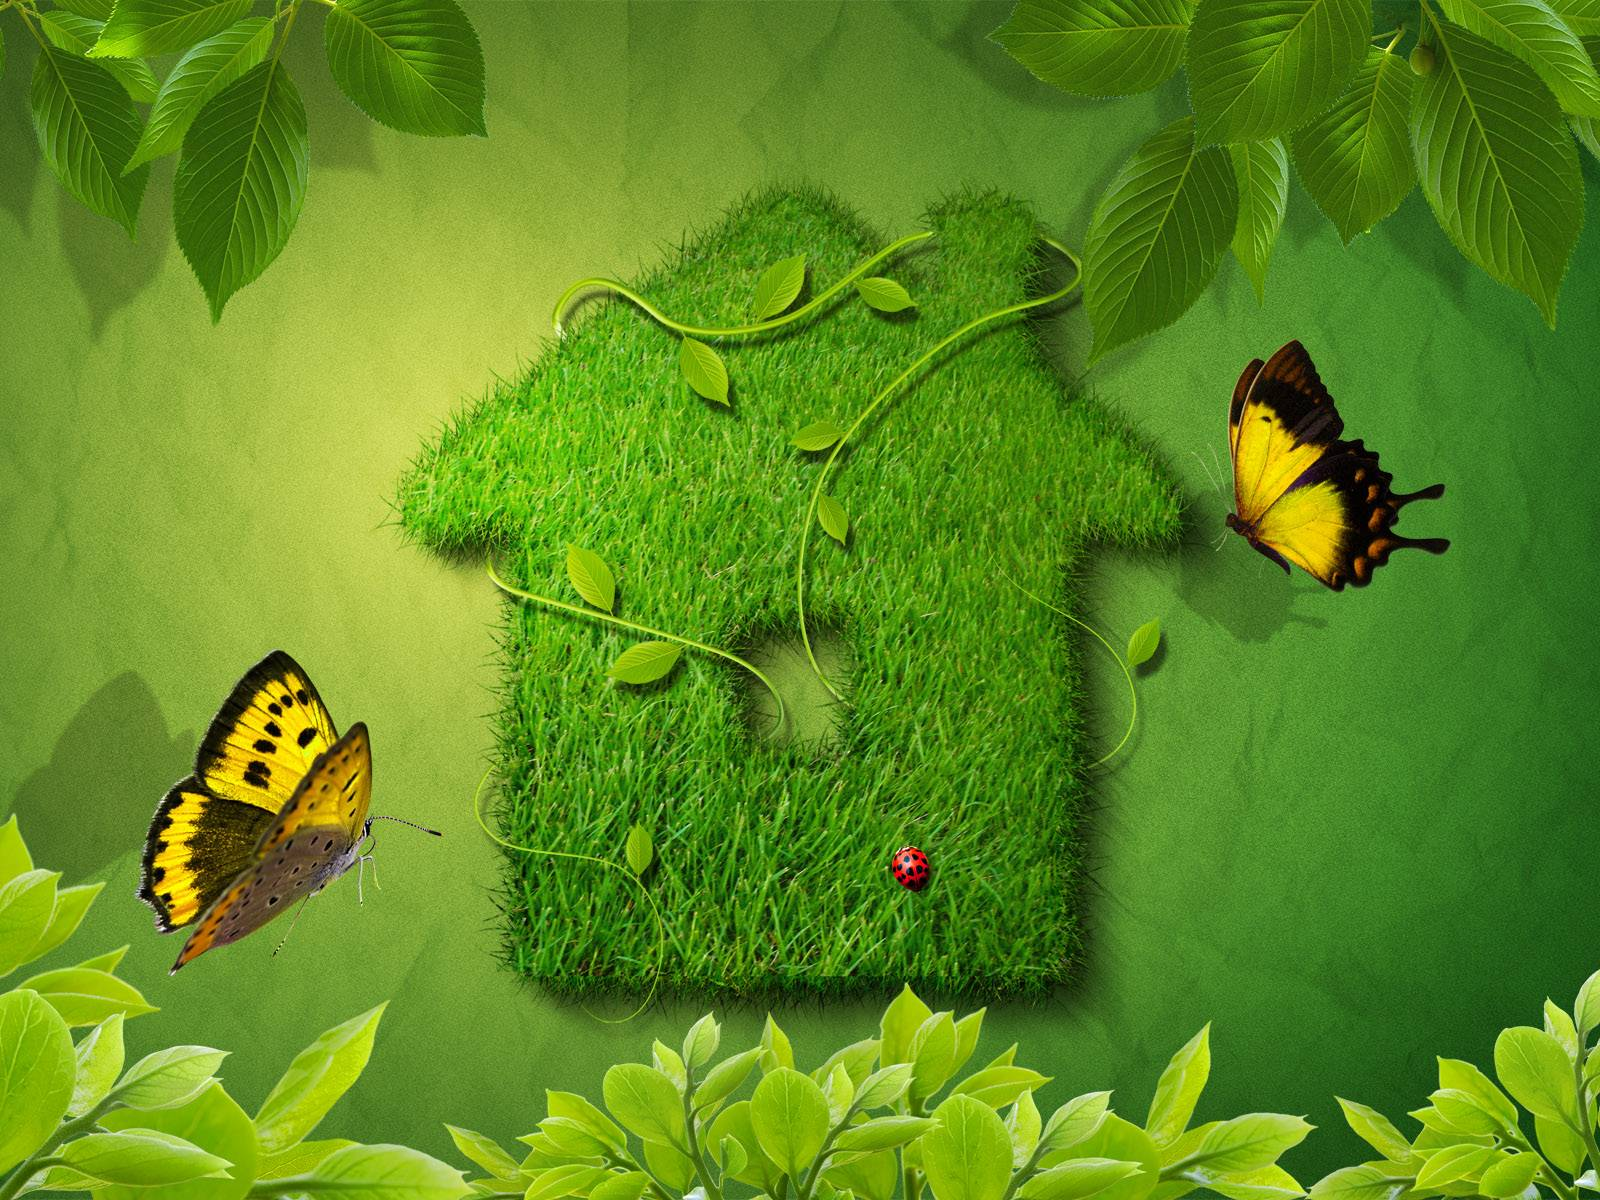 House Green Photoshop Pictures Backgrounds